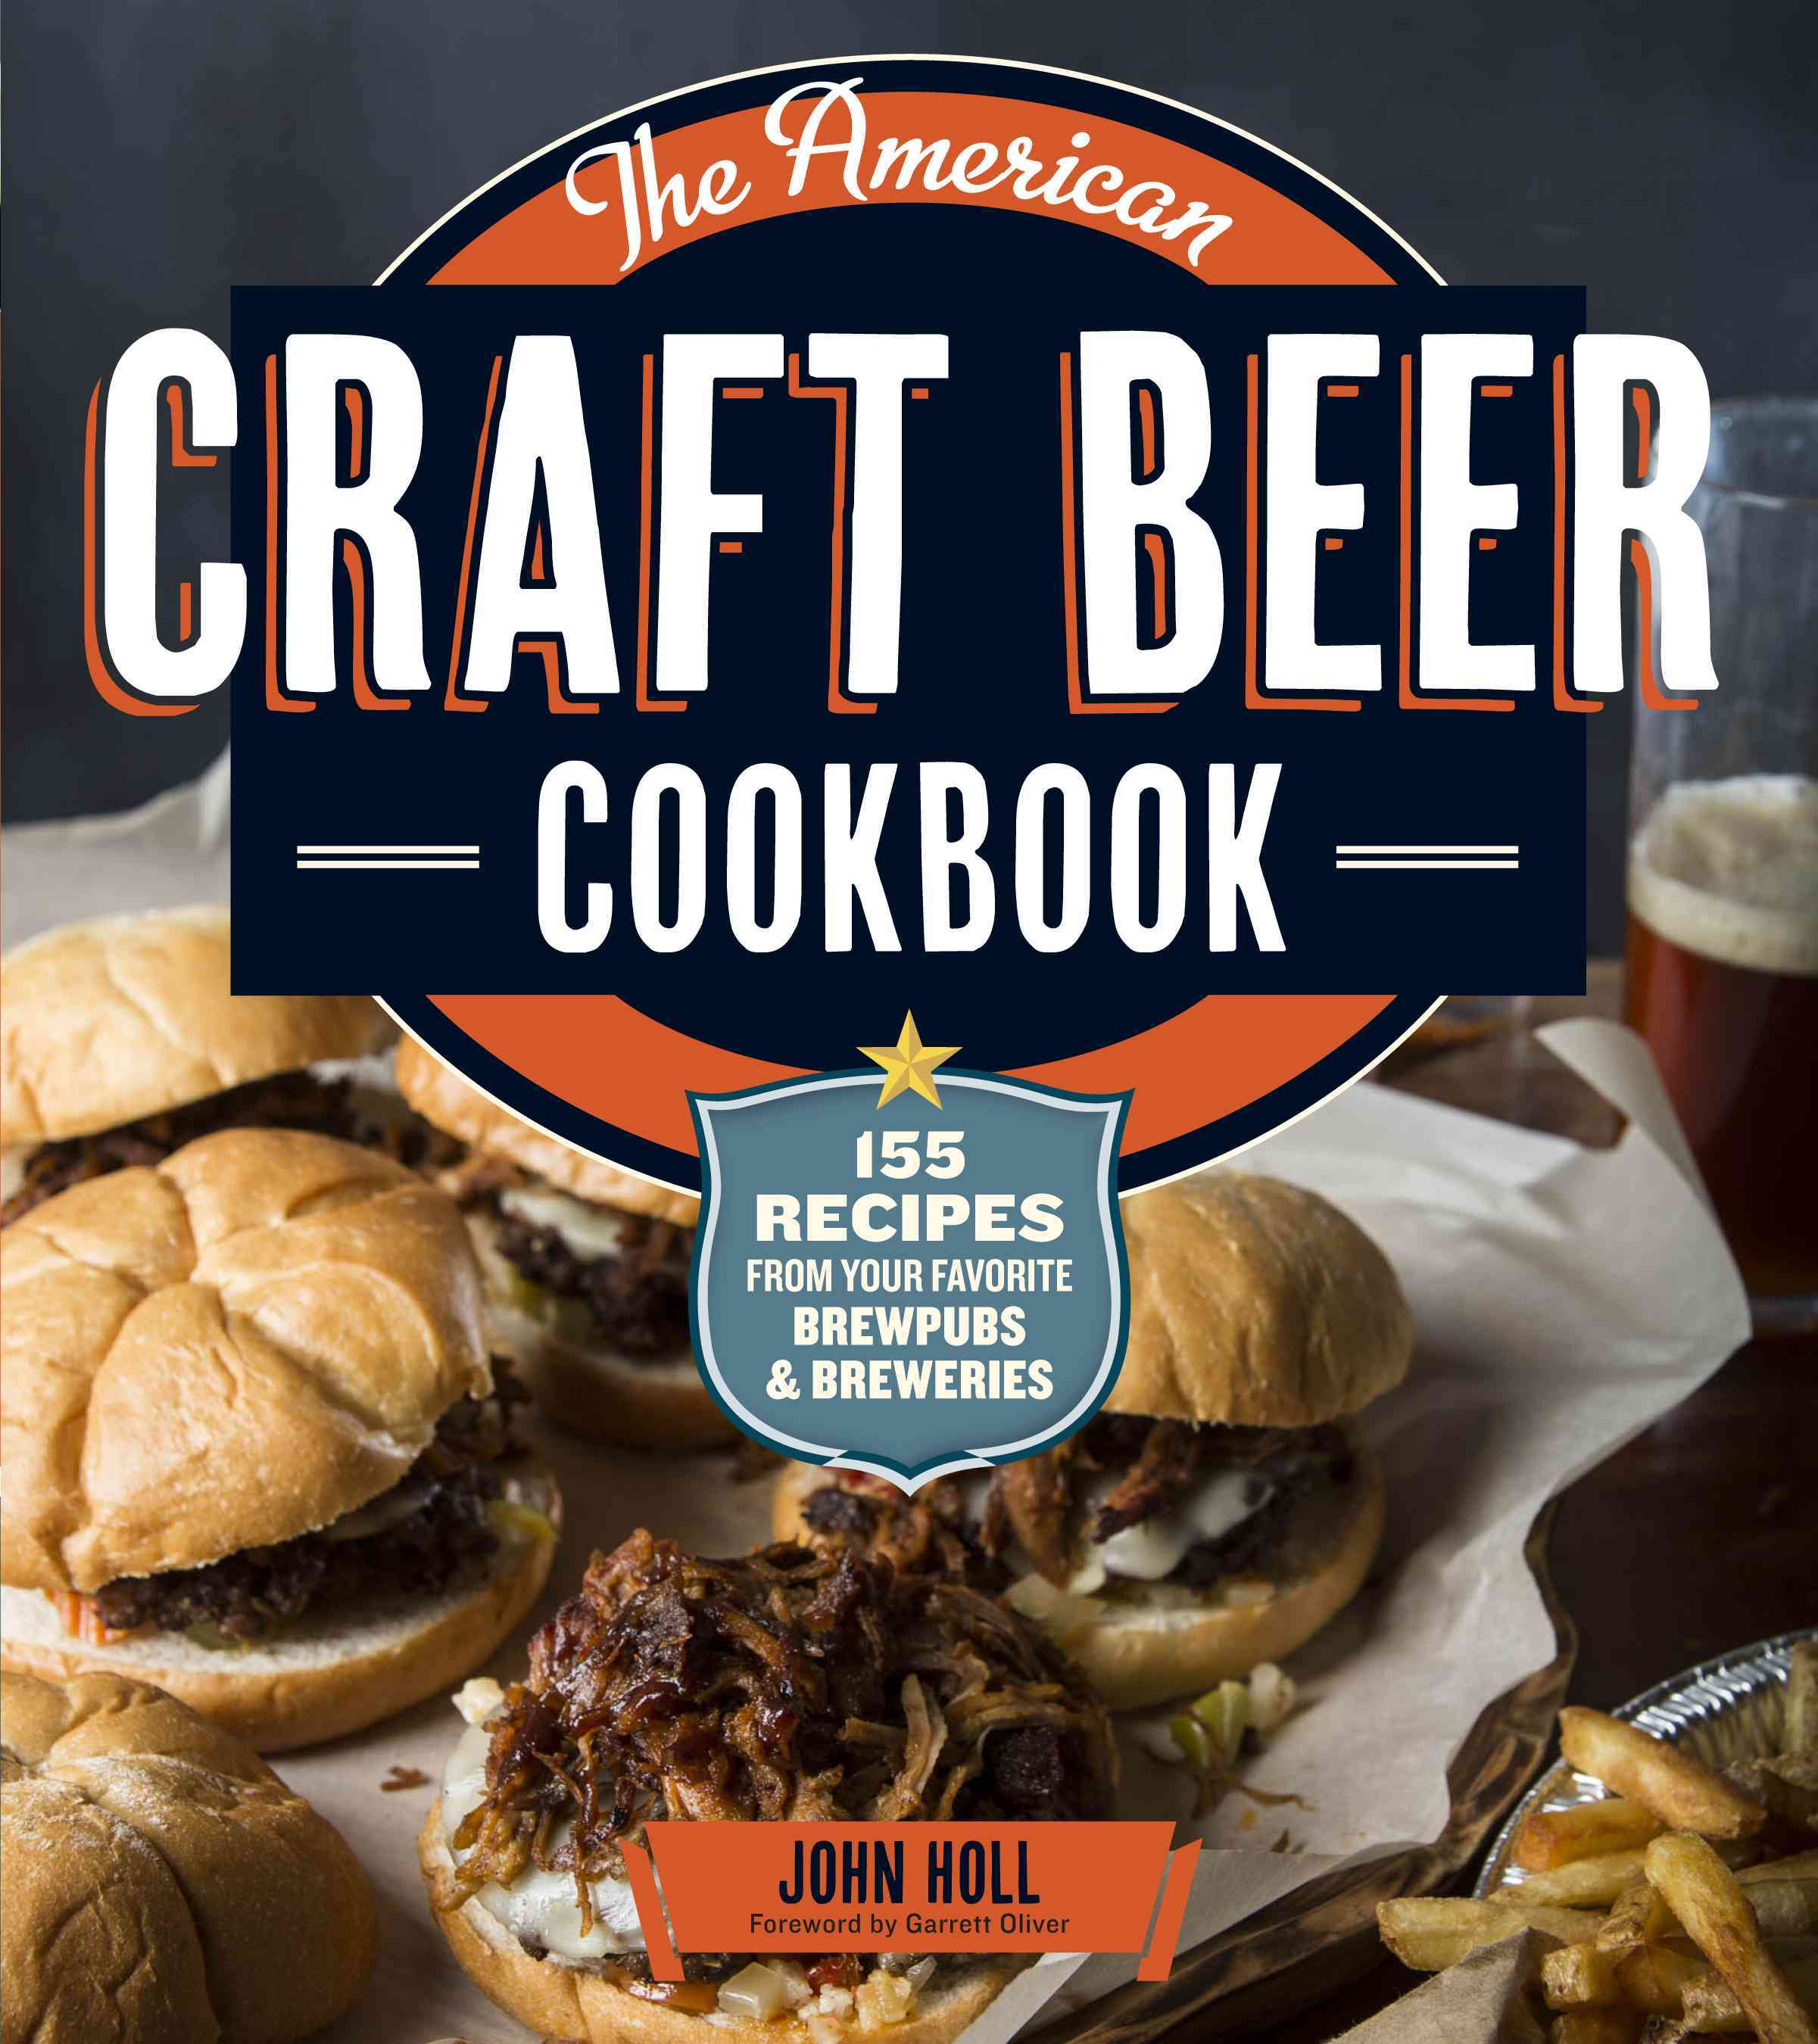 The American Craft Beer Cookbook: 155 Recipes from Your Favorite Brewpubs & Breweries (Paperback) - Thumbnail 0